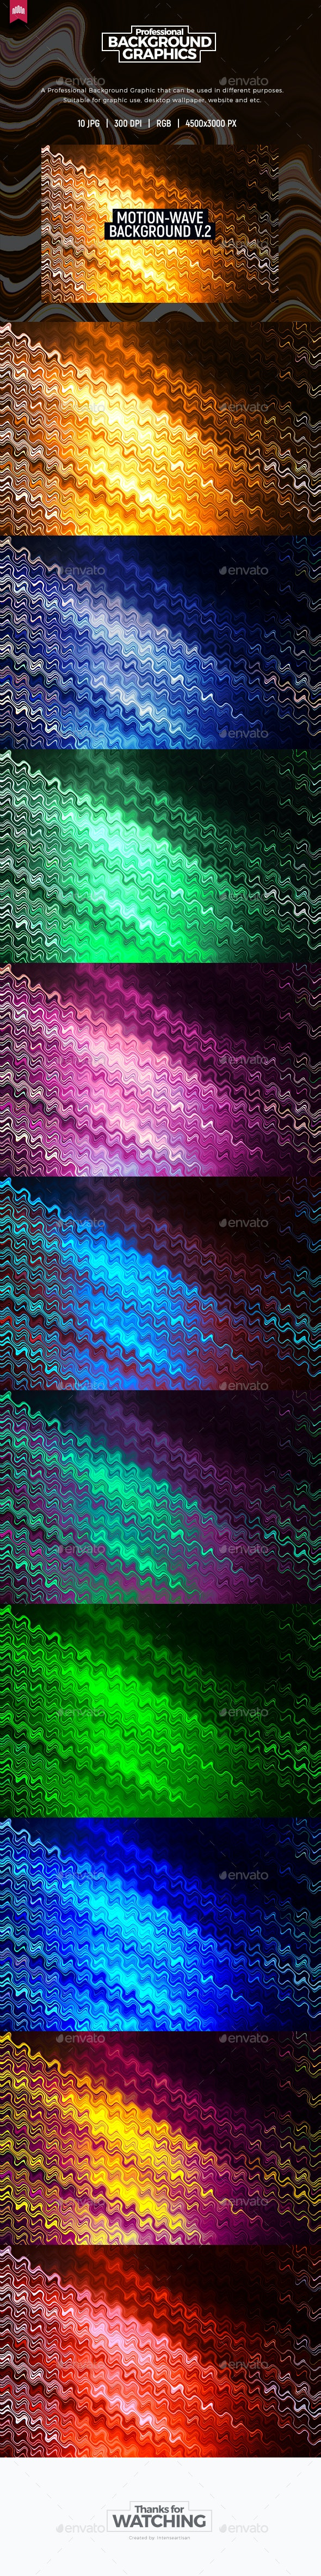 Motion Wave - Background V.2 - Abstract Backgrounds